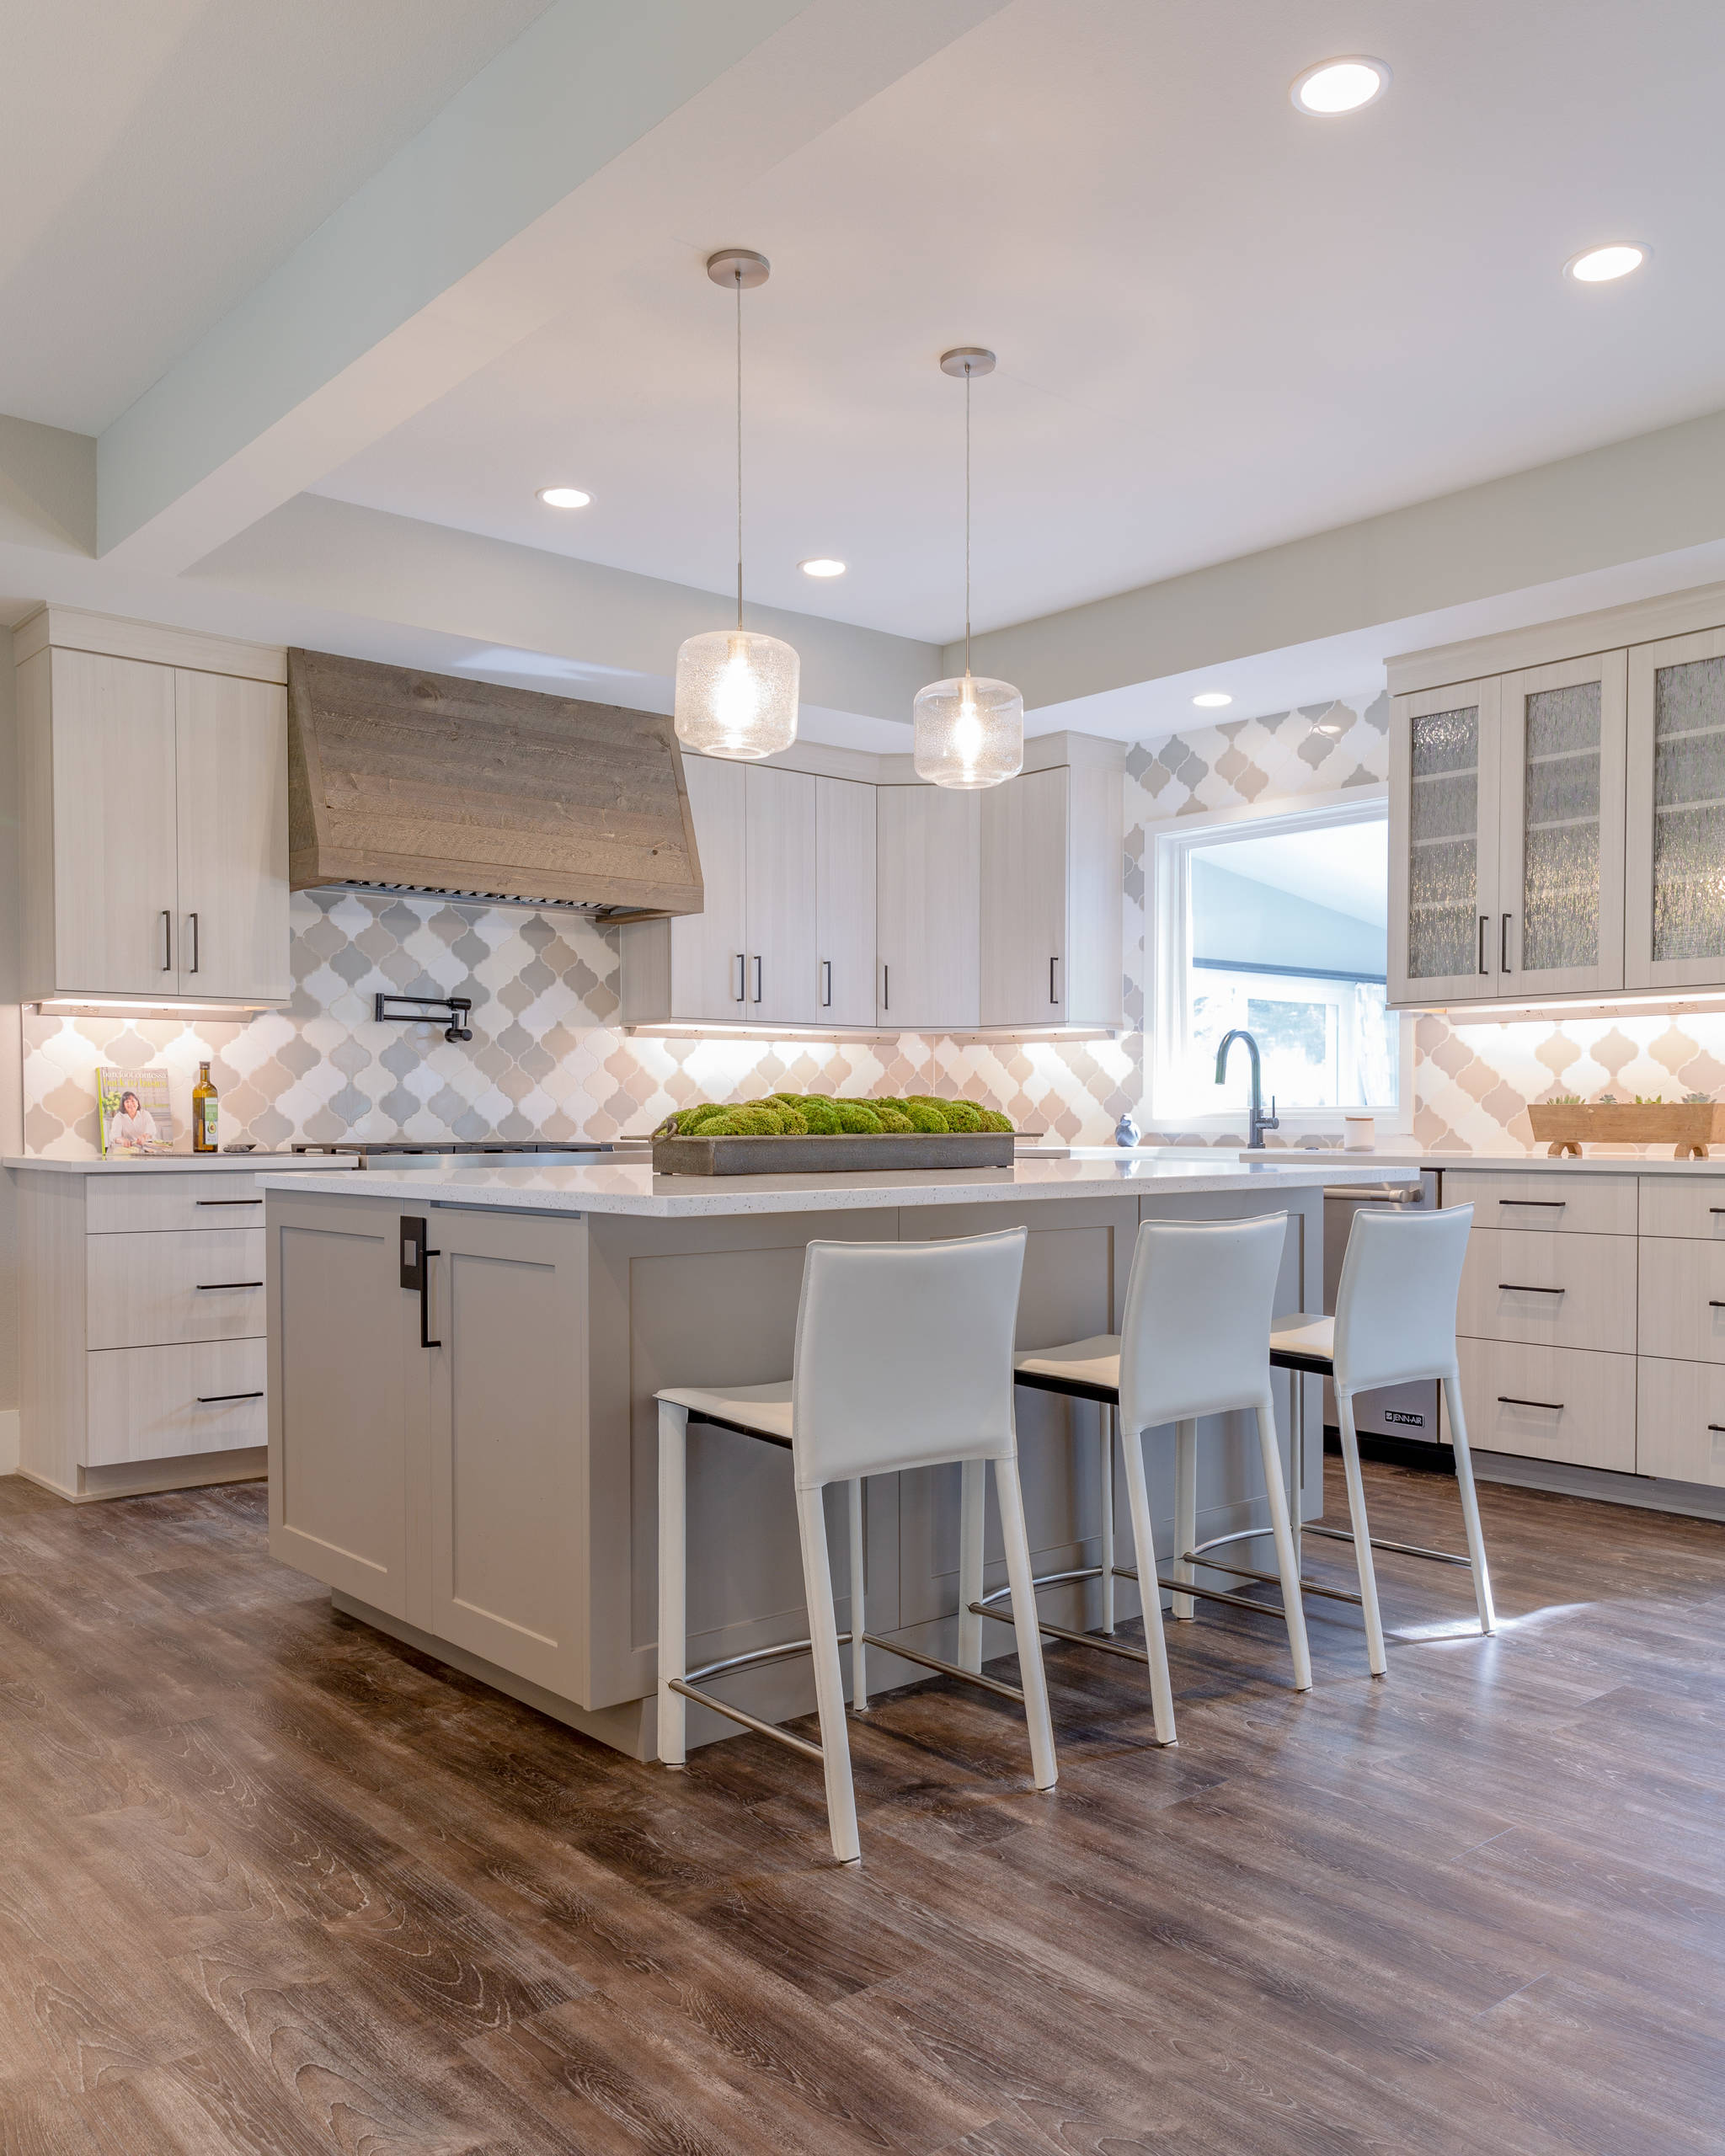 75 Beautiful Laminate Floor Kitchen Pictures Ideas January 2021 Houzz